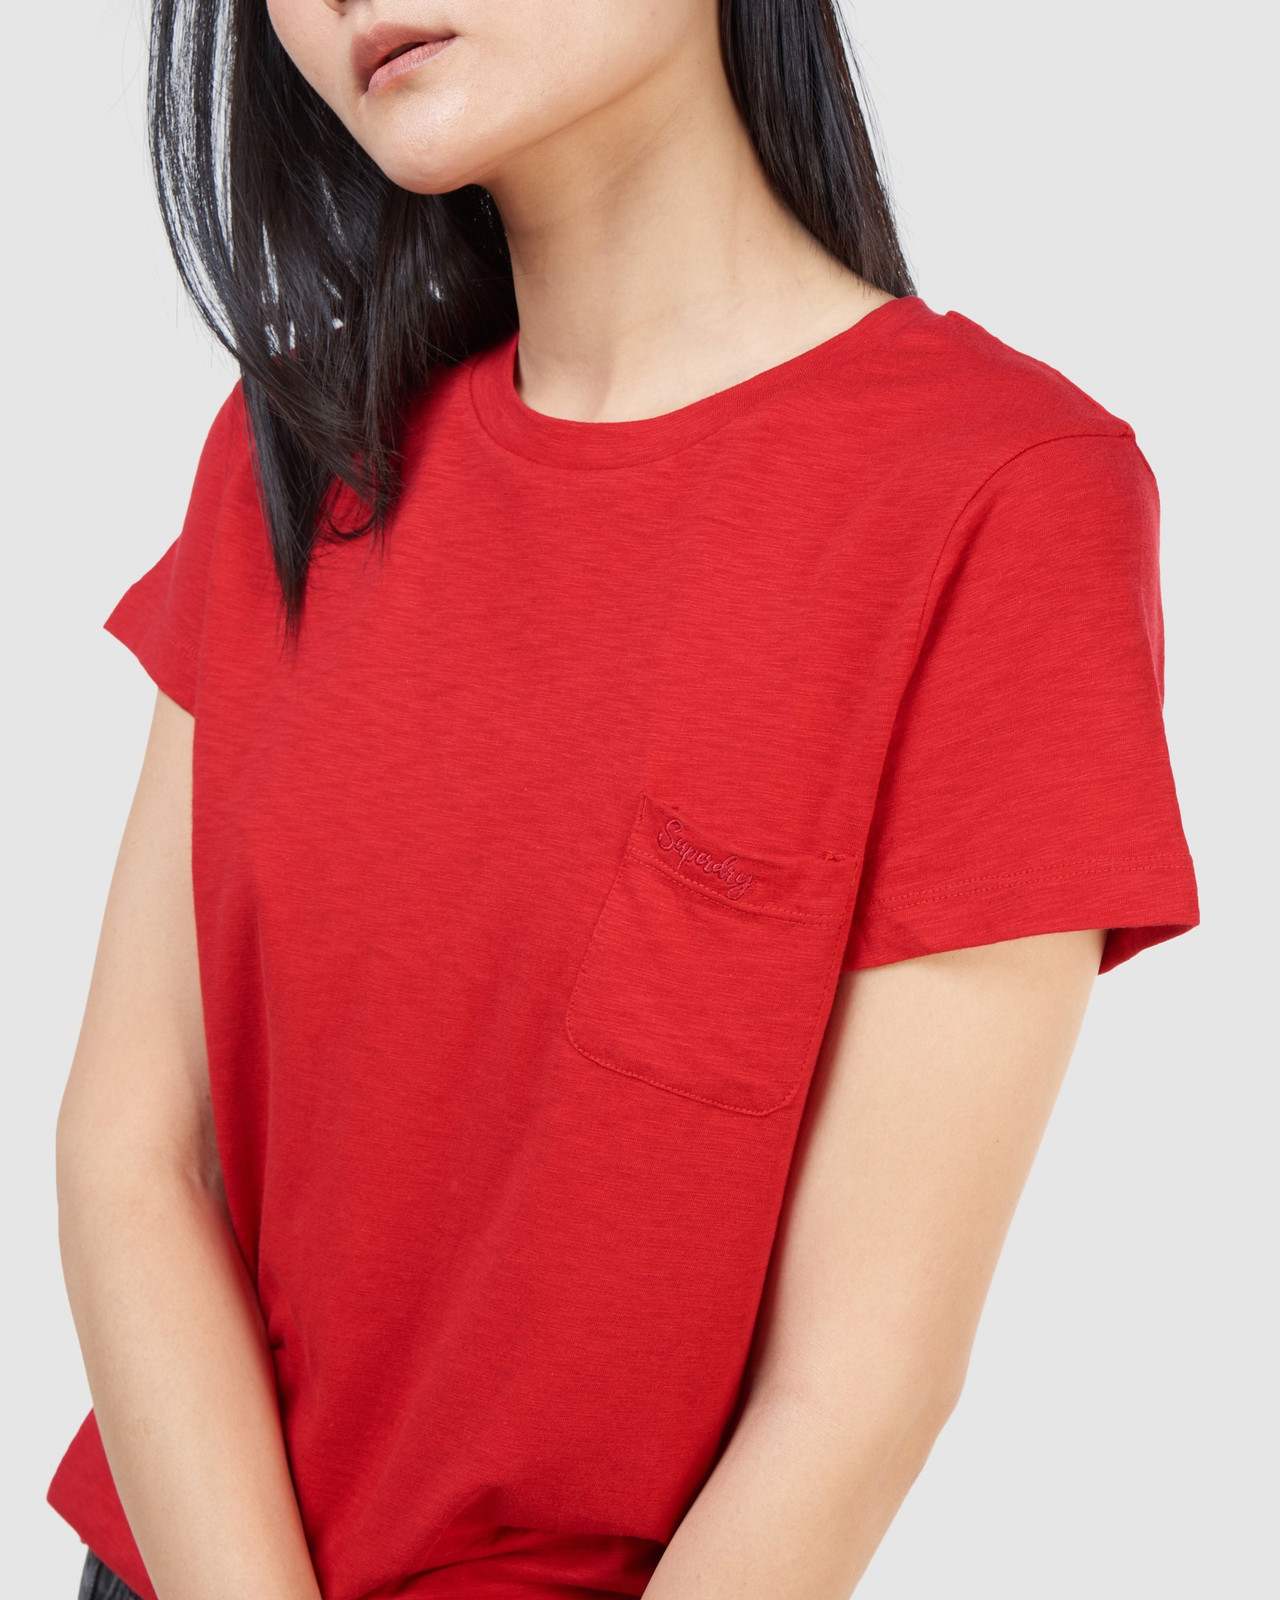 Superdry Womens SCRIPTED CREW TEE Red Plain T Shirts 5